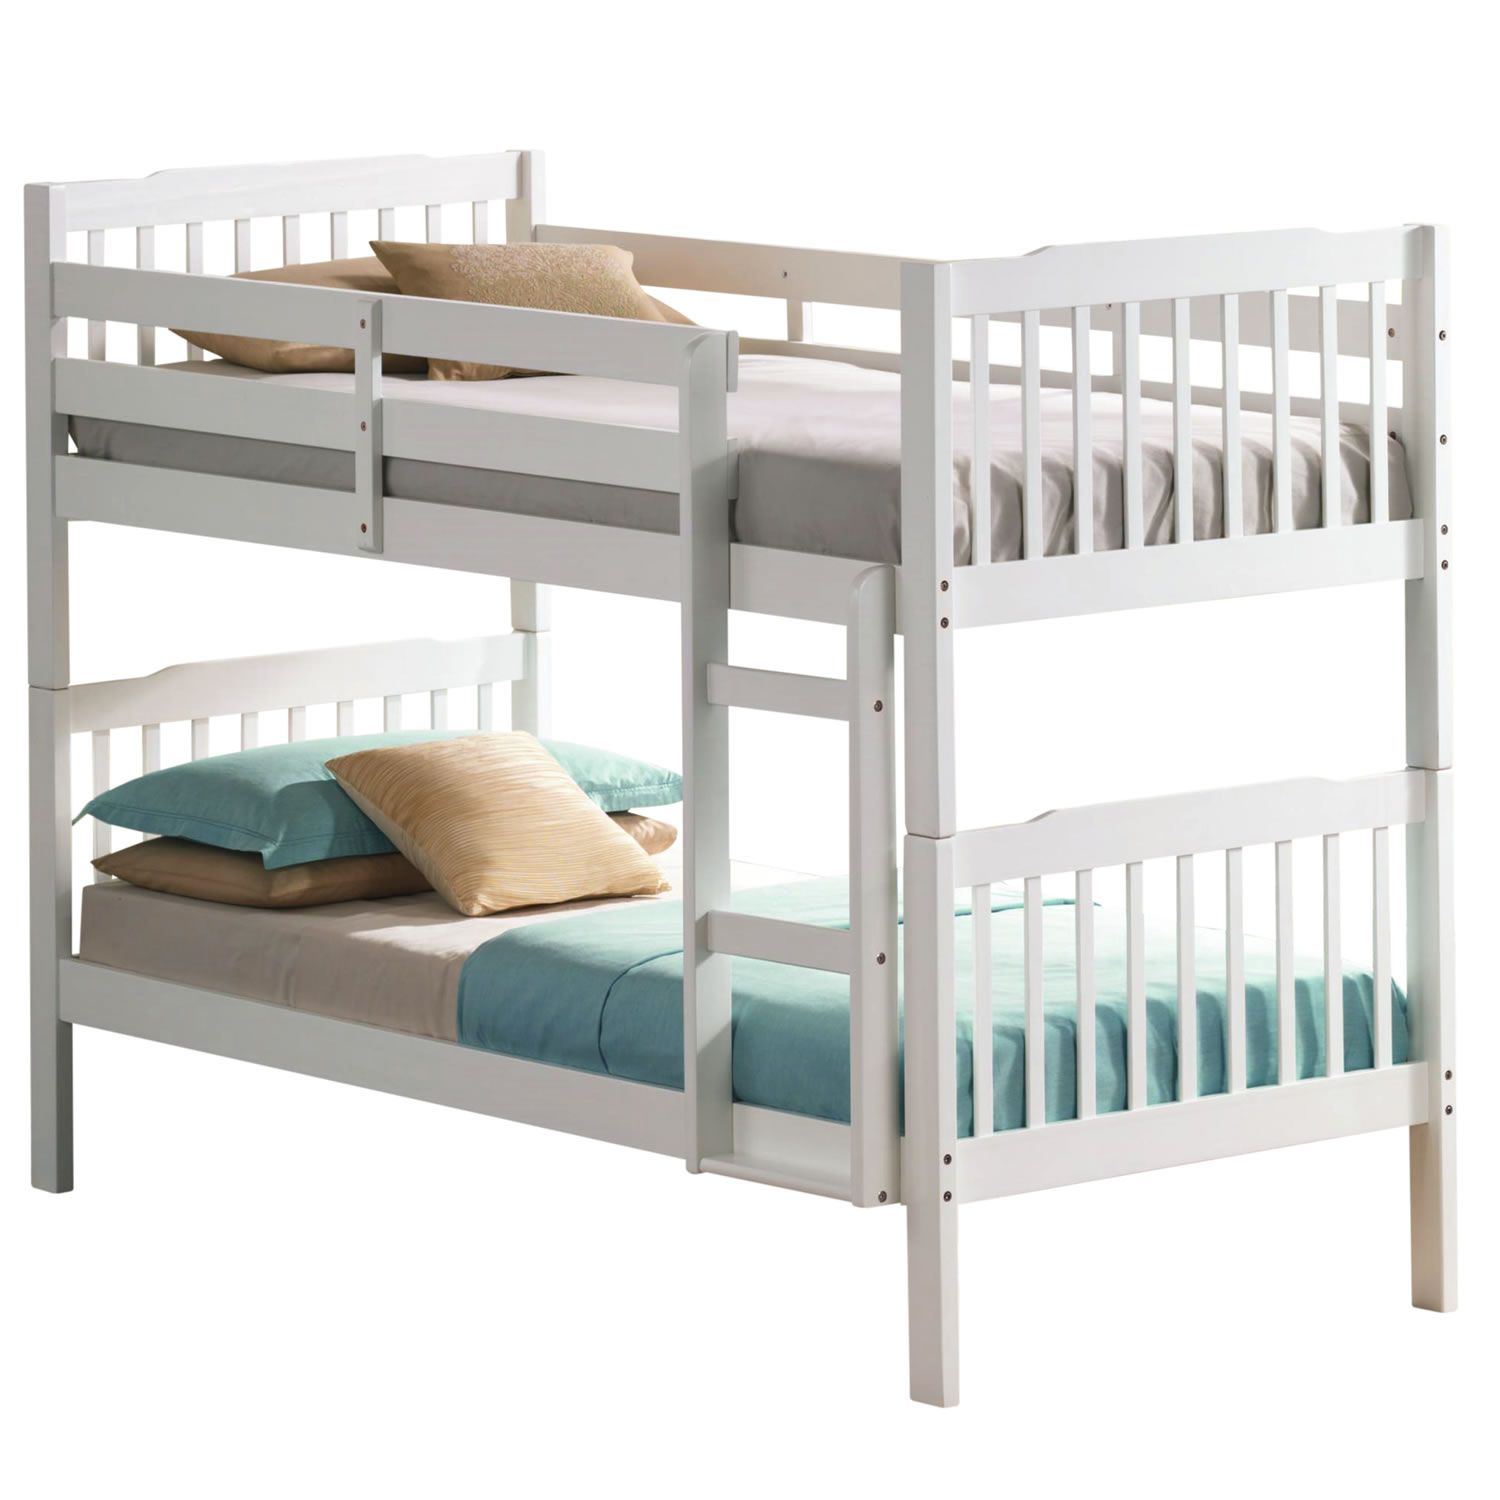 Pin by Annora on modern bedroom design style Bunk beds